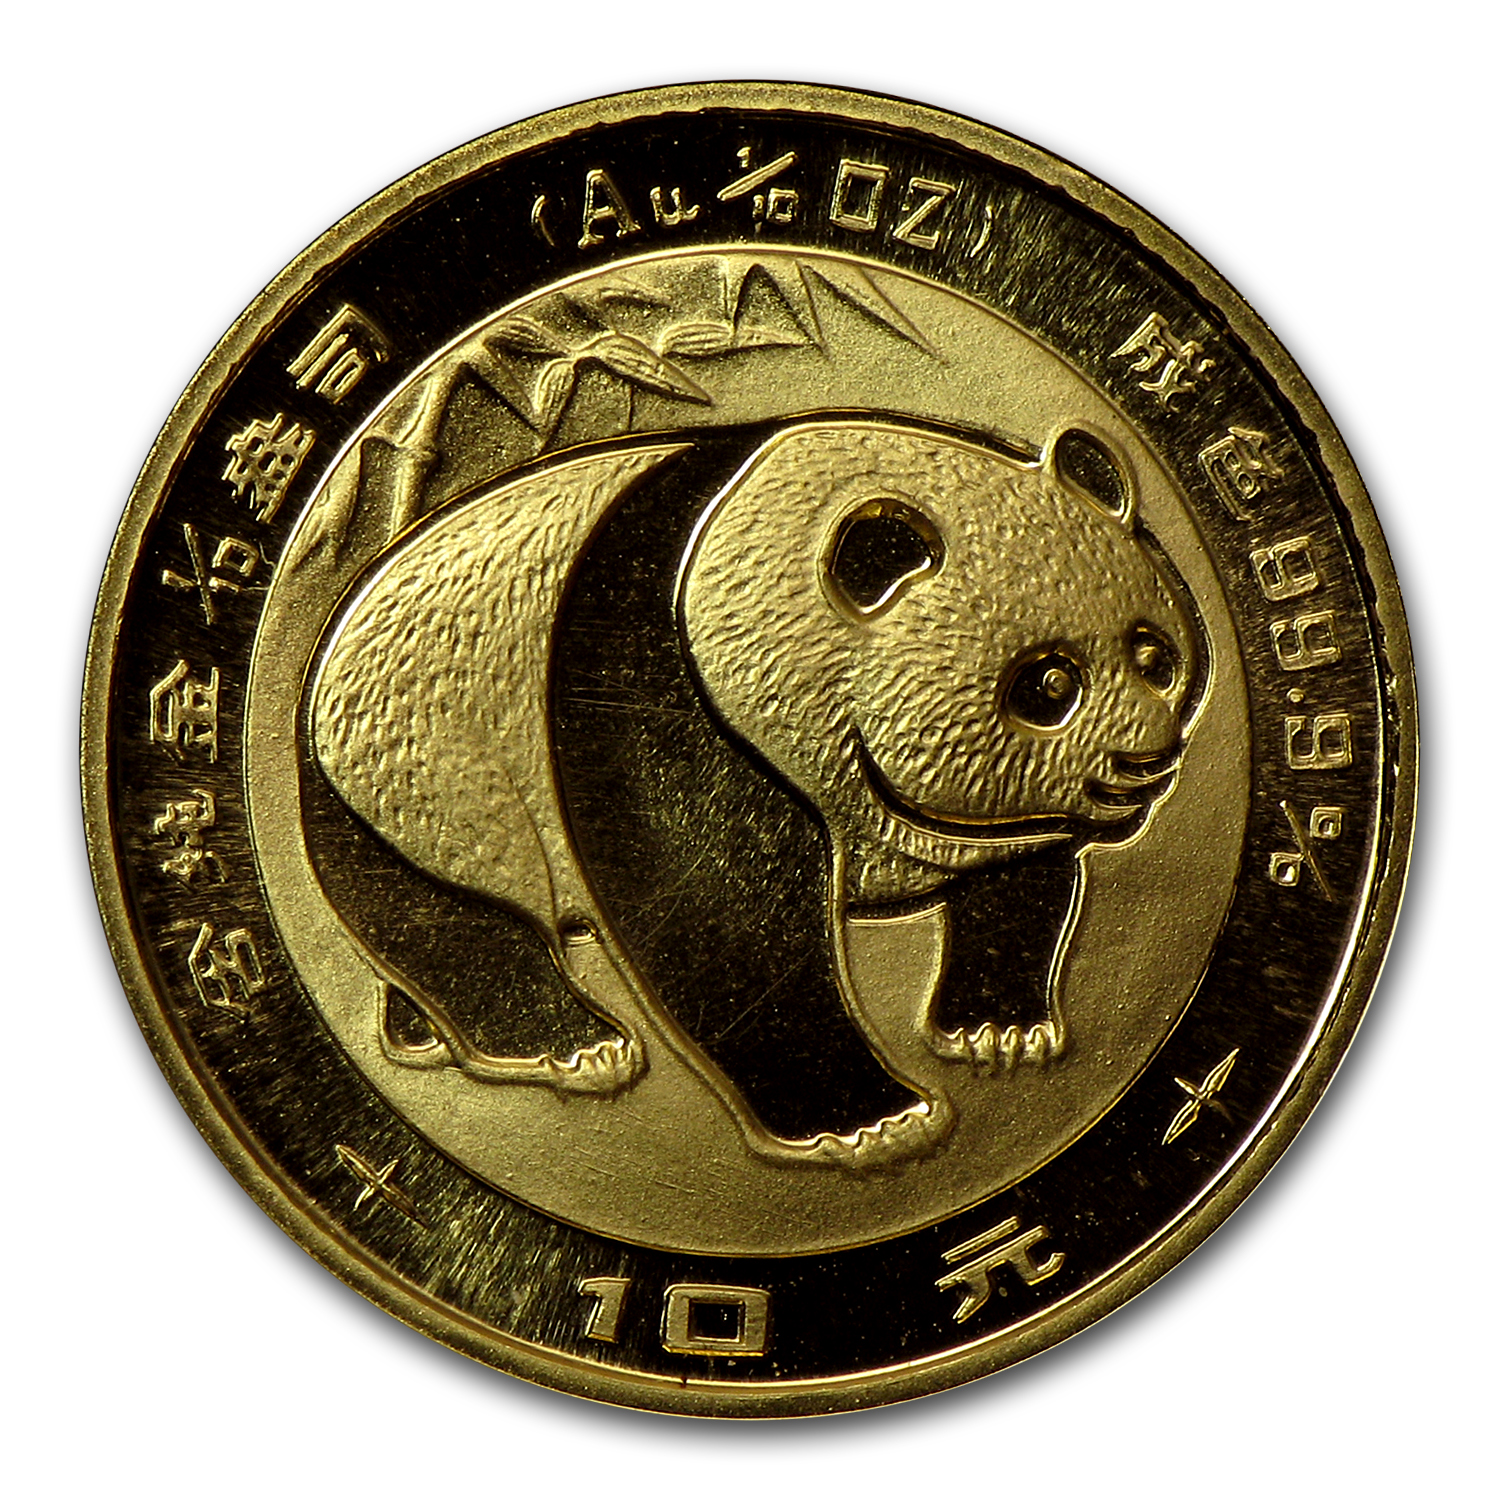 1983 China 1/10 oz Gold Panda BU (Not Sealed)